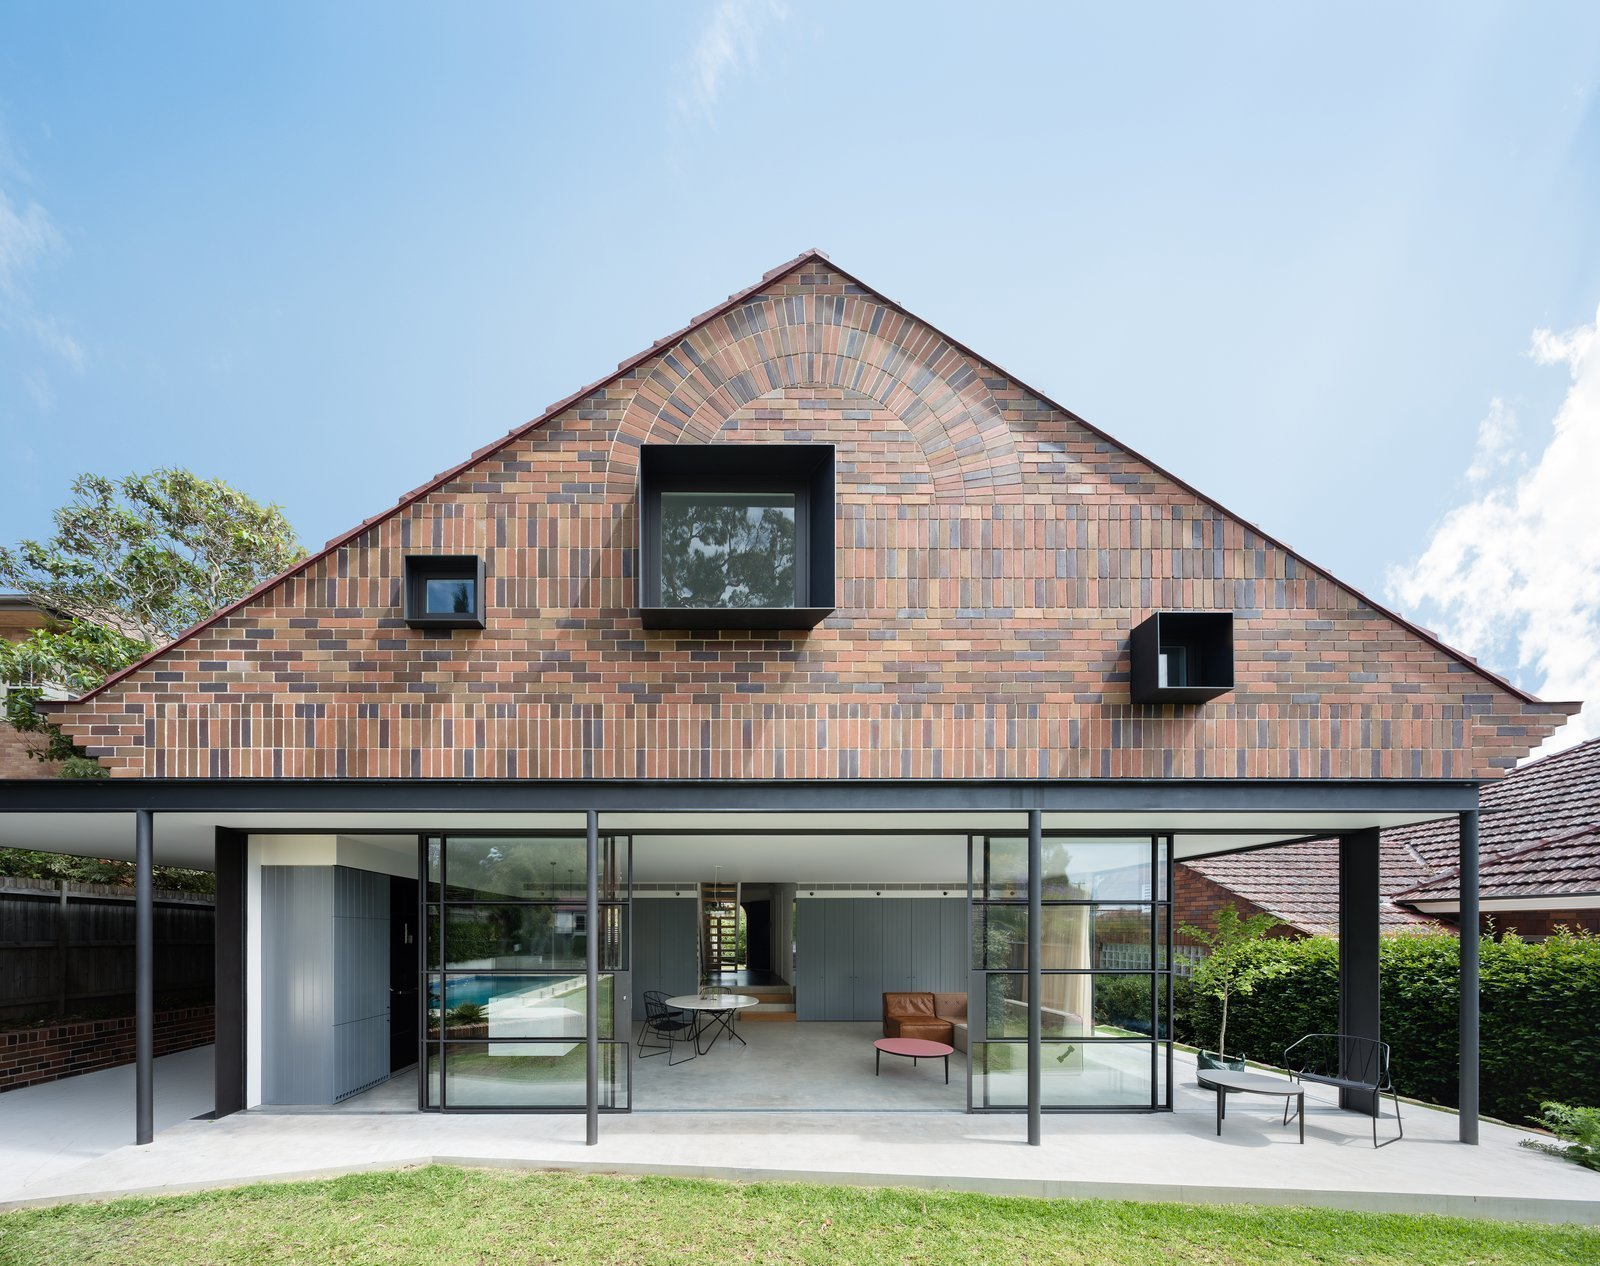 Bricks in five different colors, with alternating horizontal and vertical layouts create a visually captivating façade in this 1930s renovated bungalow in Sydney. 10 Modern Structures That Use Brick in Interesting Ways - Photo 4 of 10